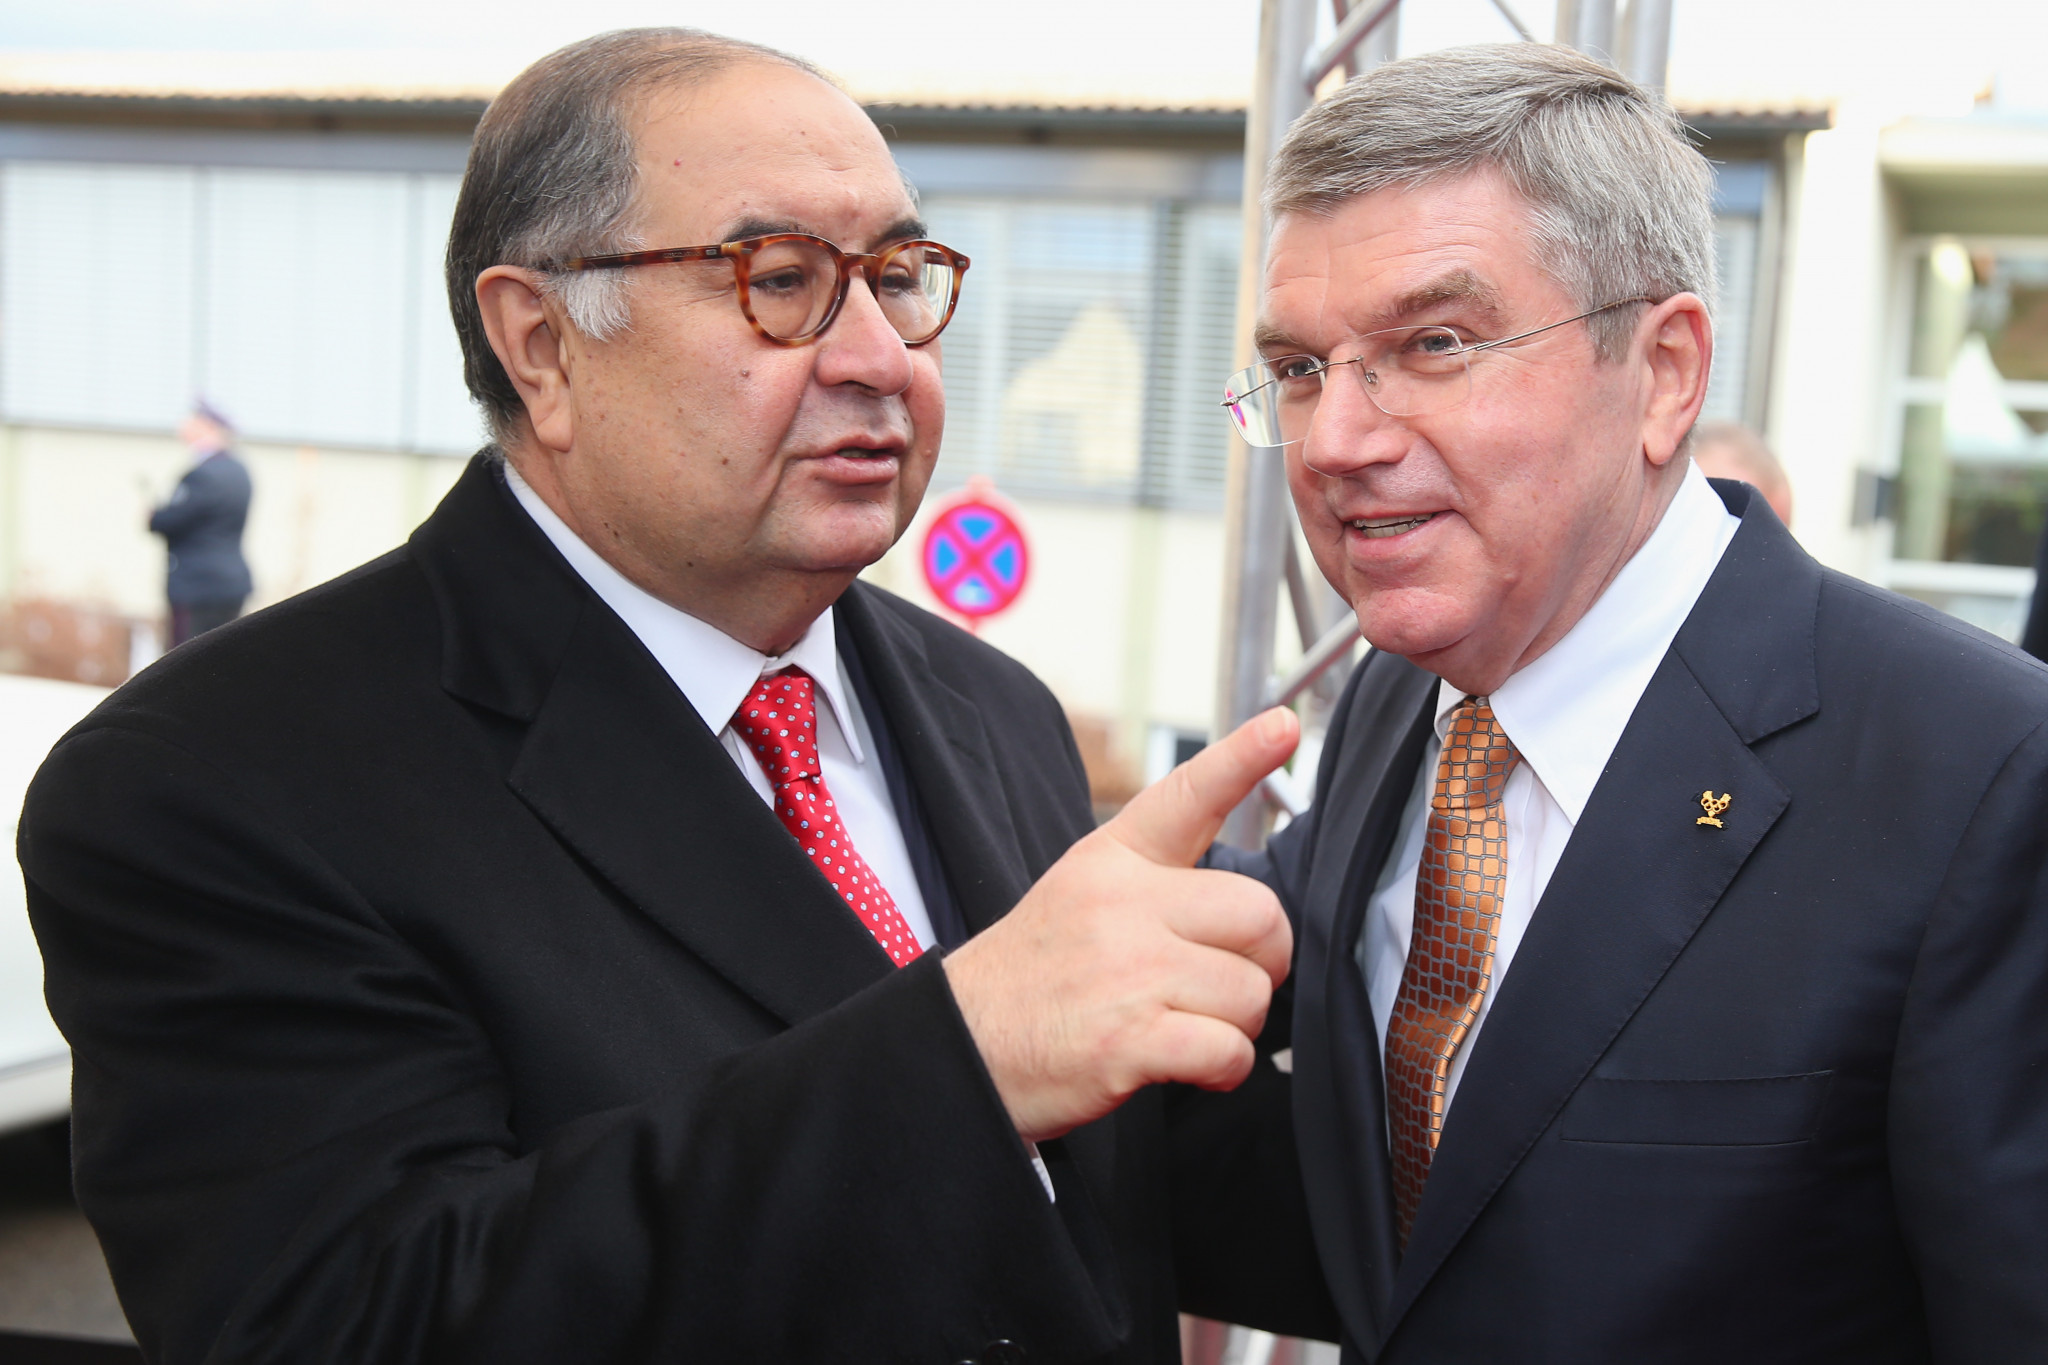 Alisher Usmanov, left, President of the International Fencing Federation, seen chatting to IOC President Thomas Bach at the latter's 60th Birthday party in Tauberbischofsheim, Germany back in January 2014 ©Getty Images